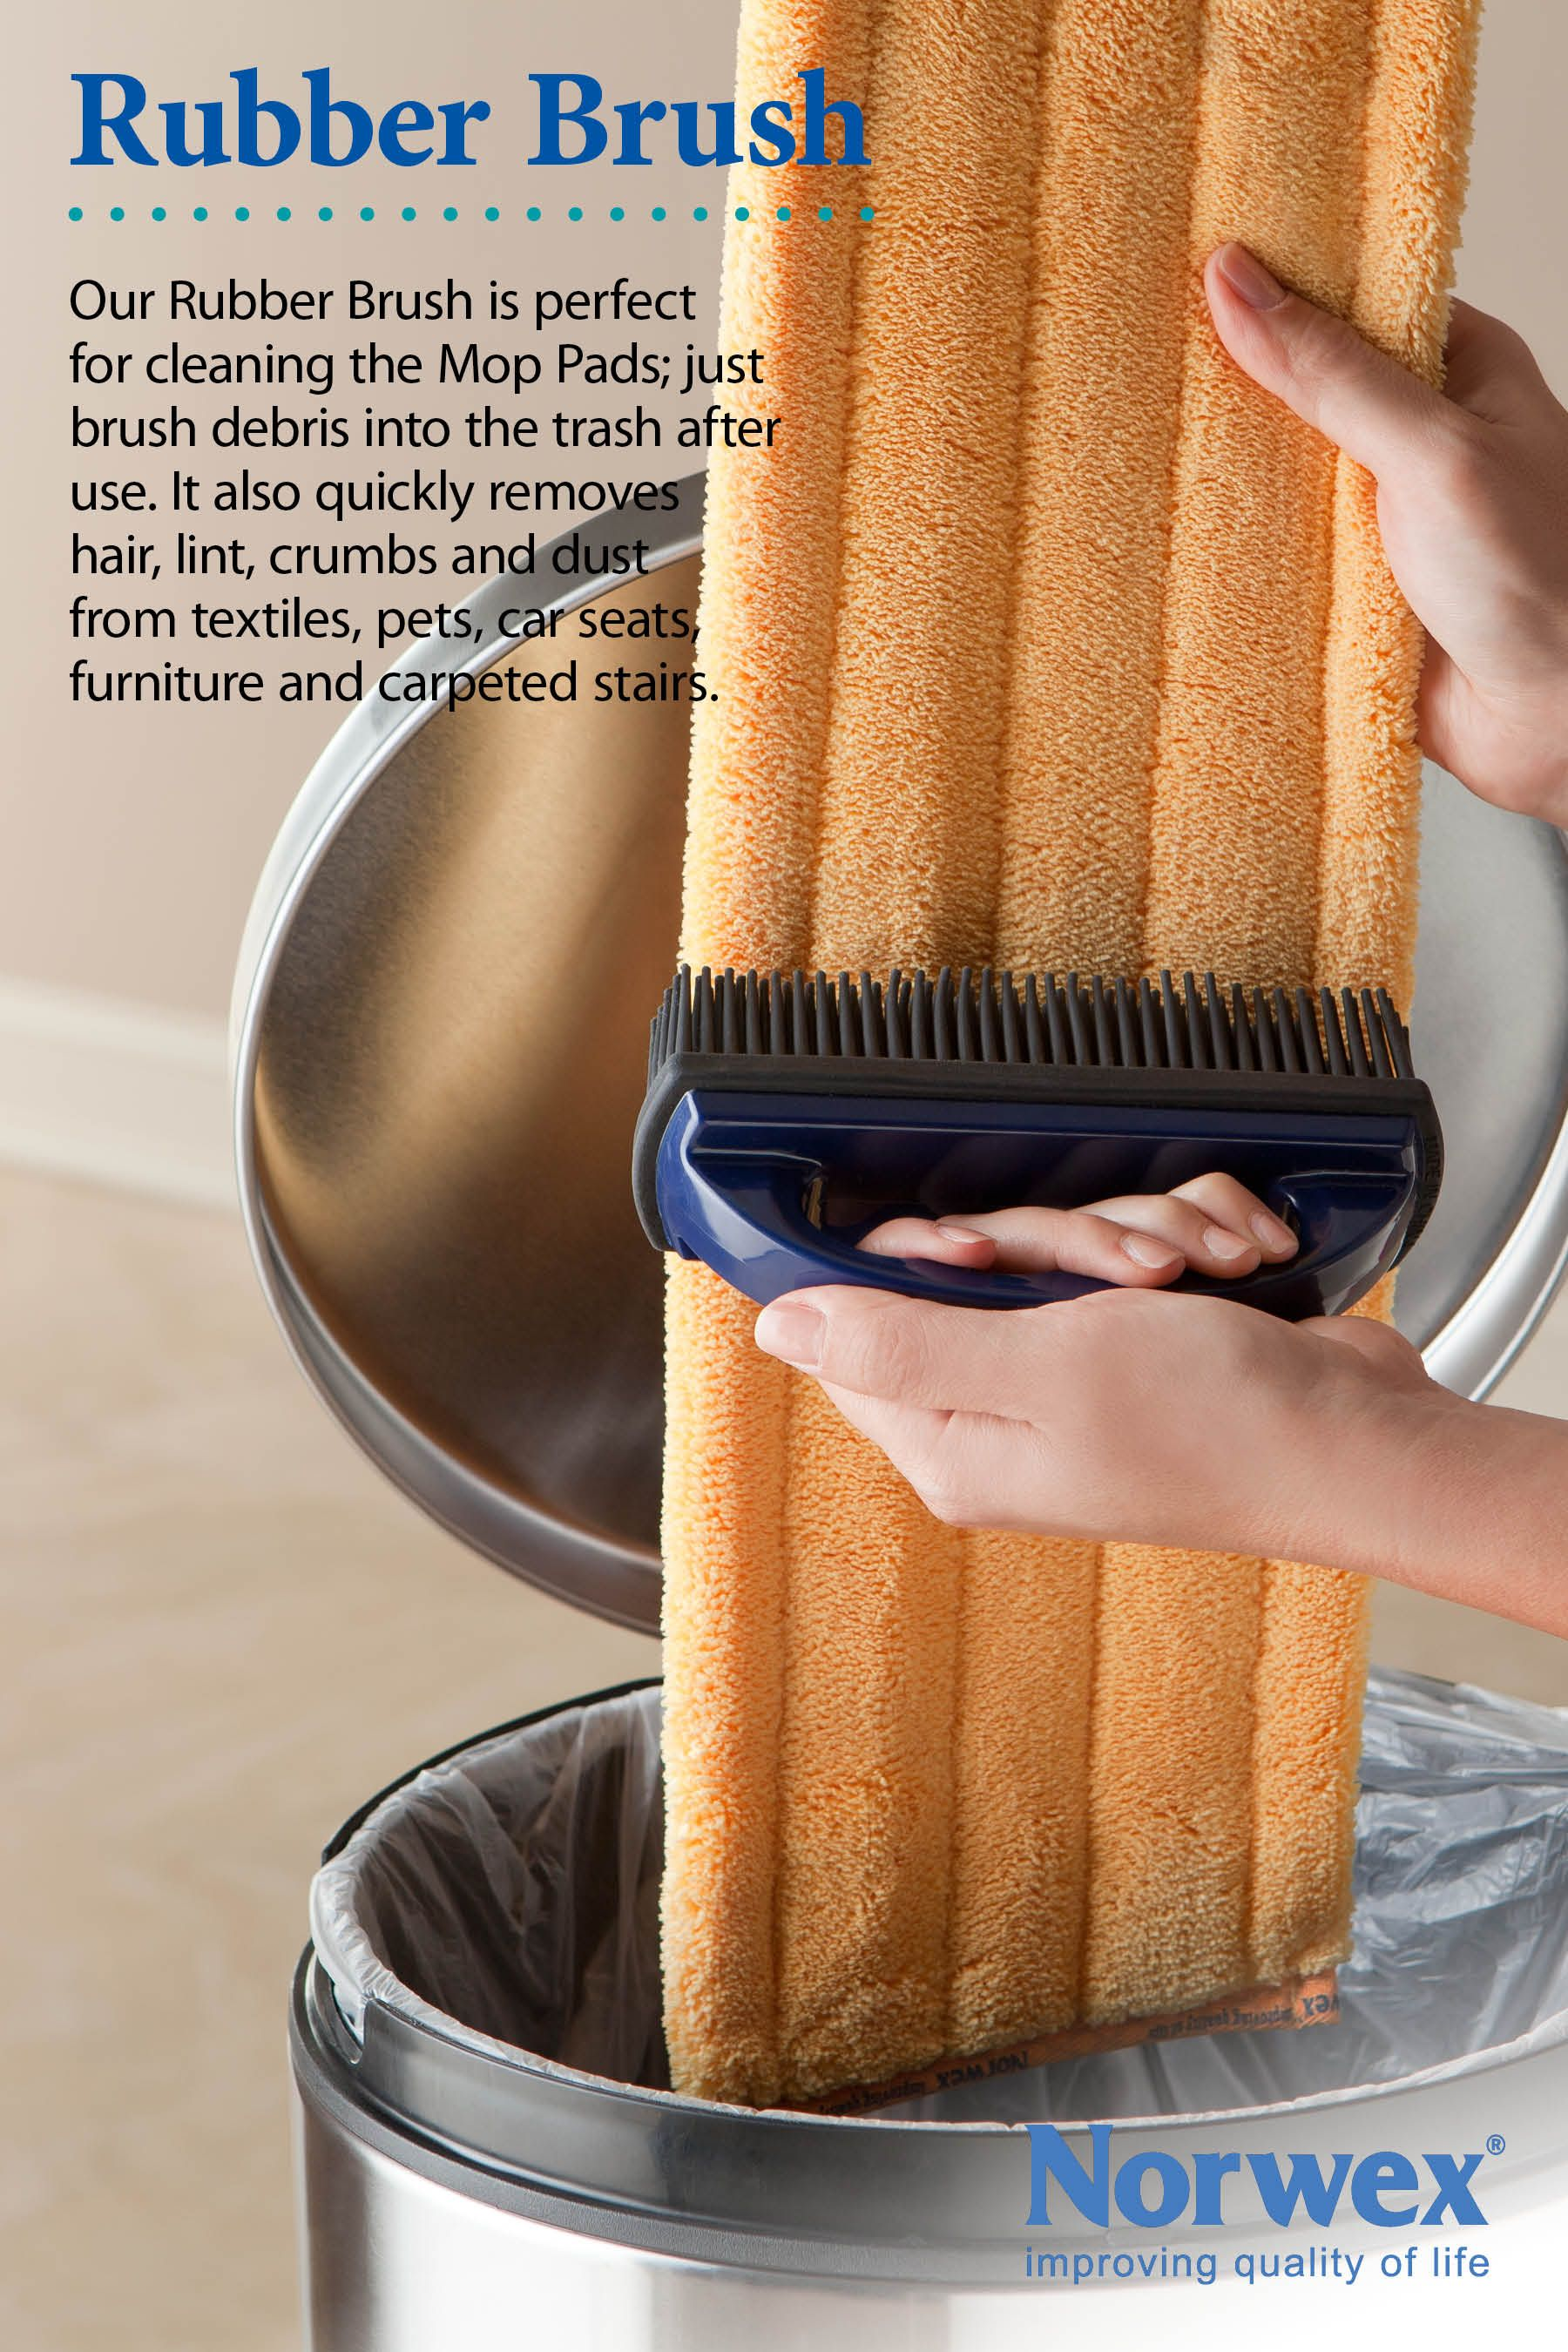 How To Get Dog Hair Out Of Car Carpet >> Norwex Rubber Brush Use for Removing: * Pet hair * Lint